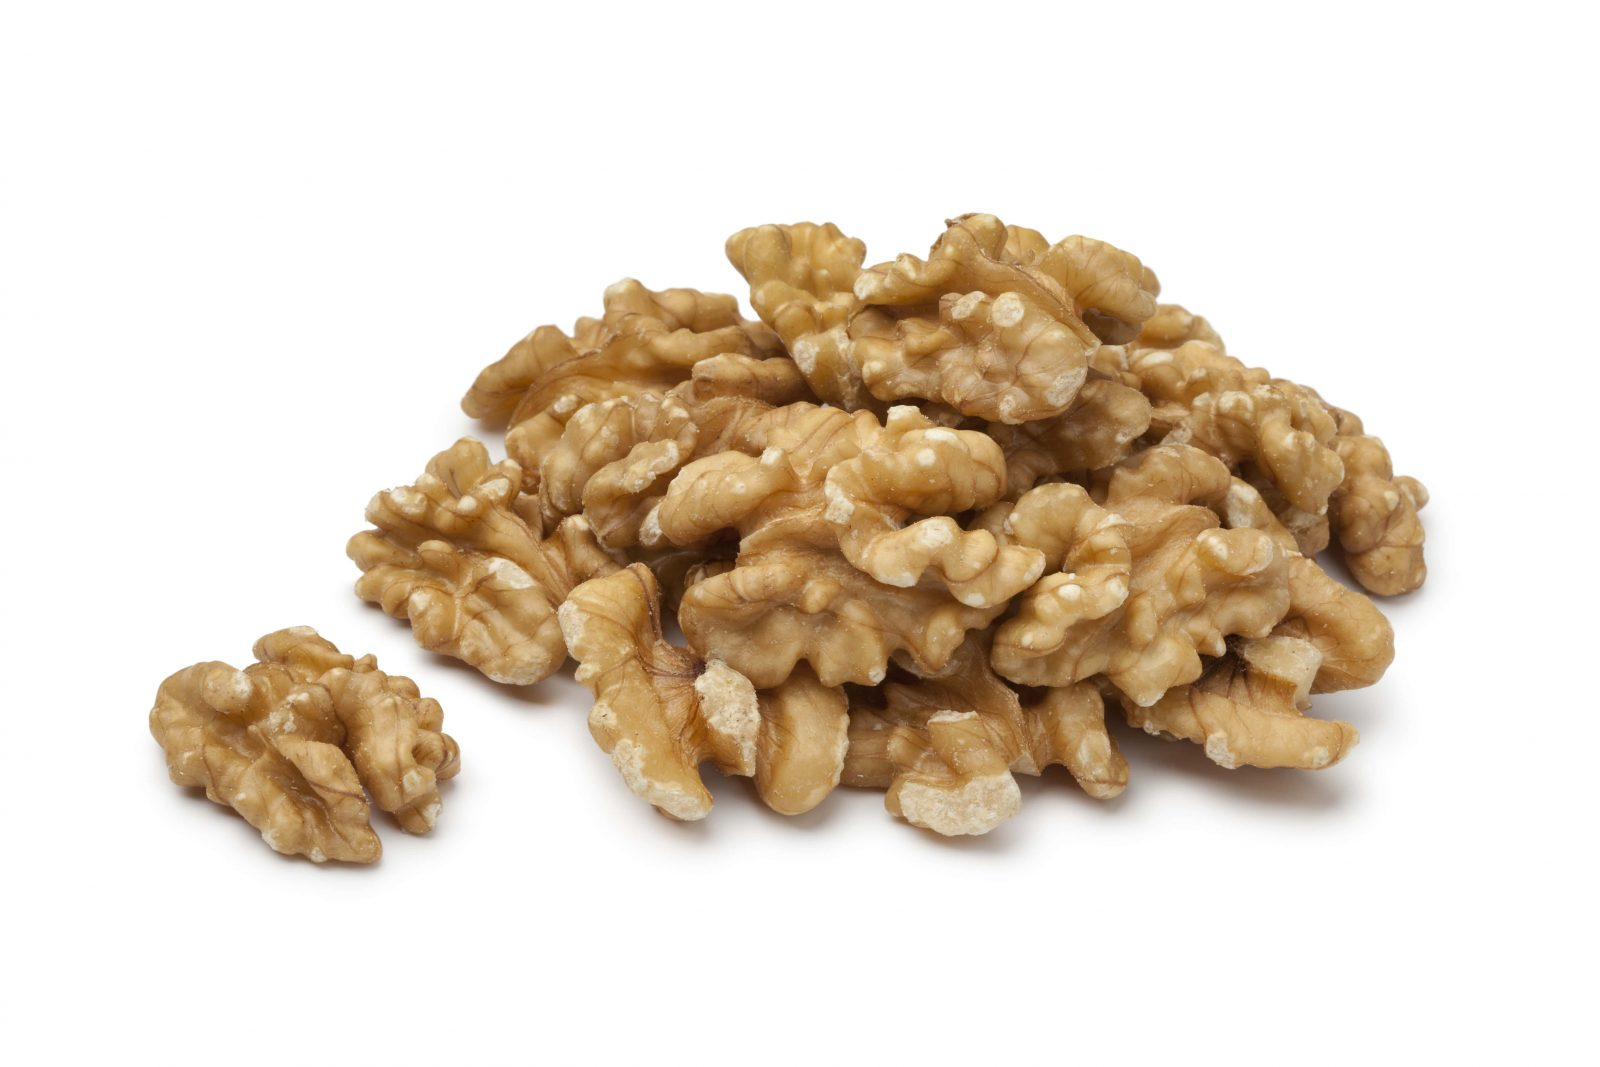 heap-of-peeled-walnuts-P9VFN4G-min.jpg